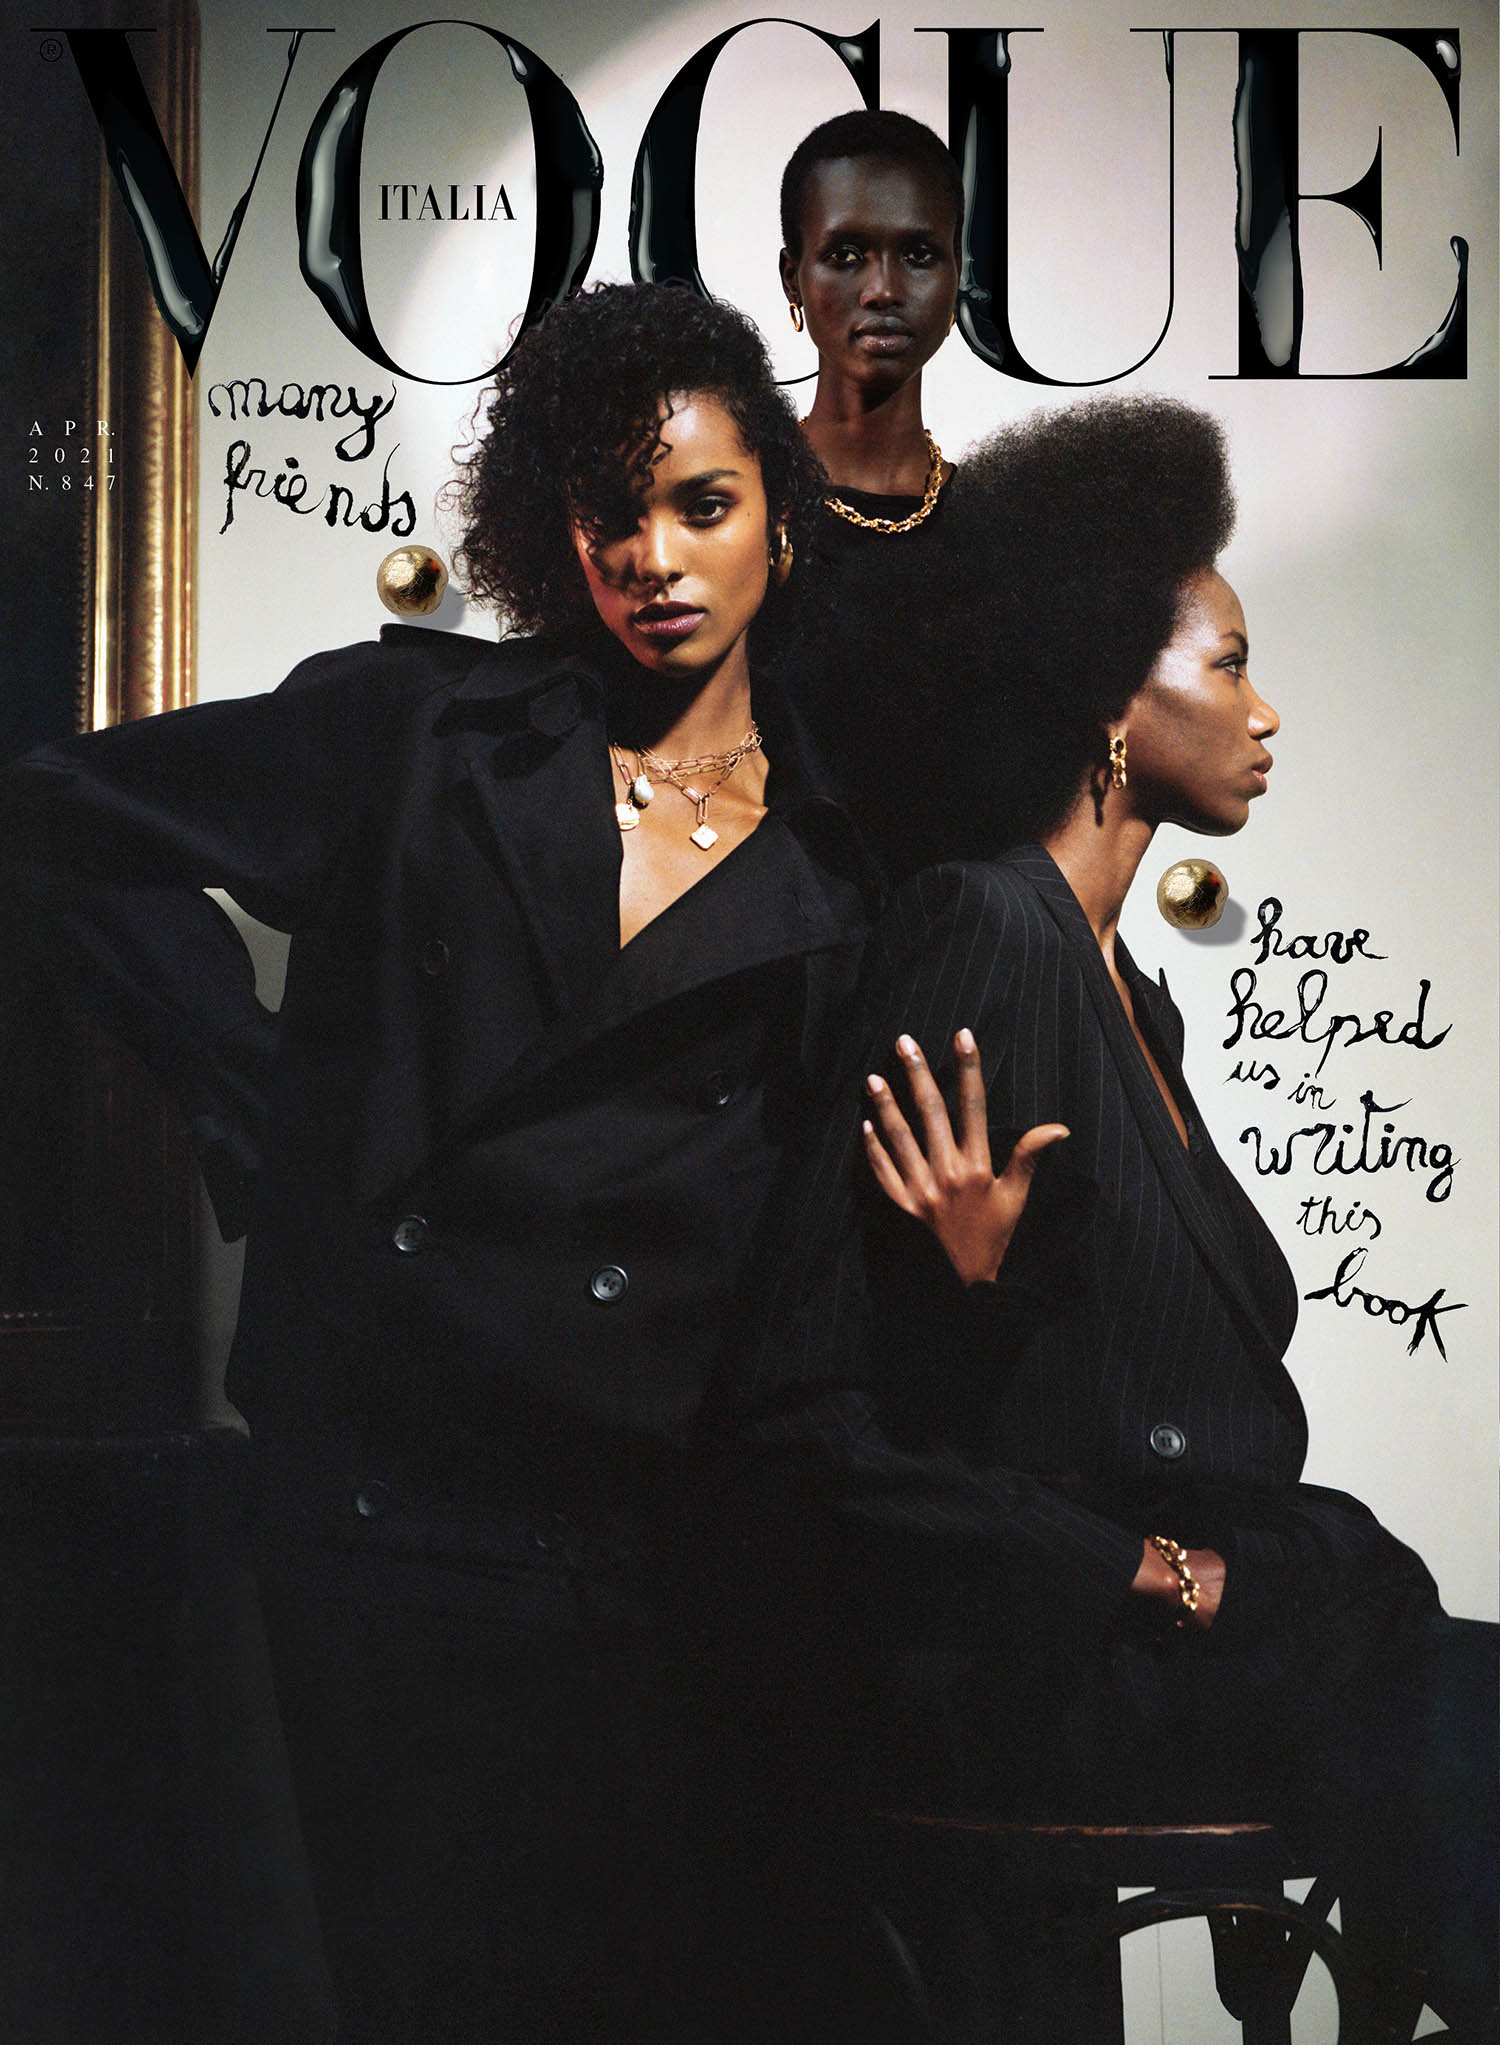 Malika Louback, Amar Akway and Skarla Ali cover Vogue Italia April 2021 by Malick Bodian